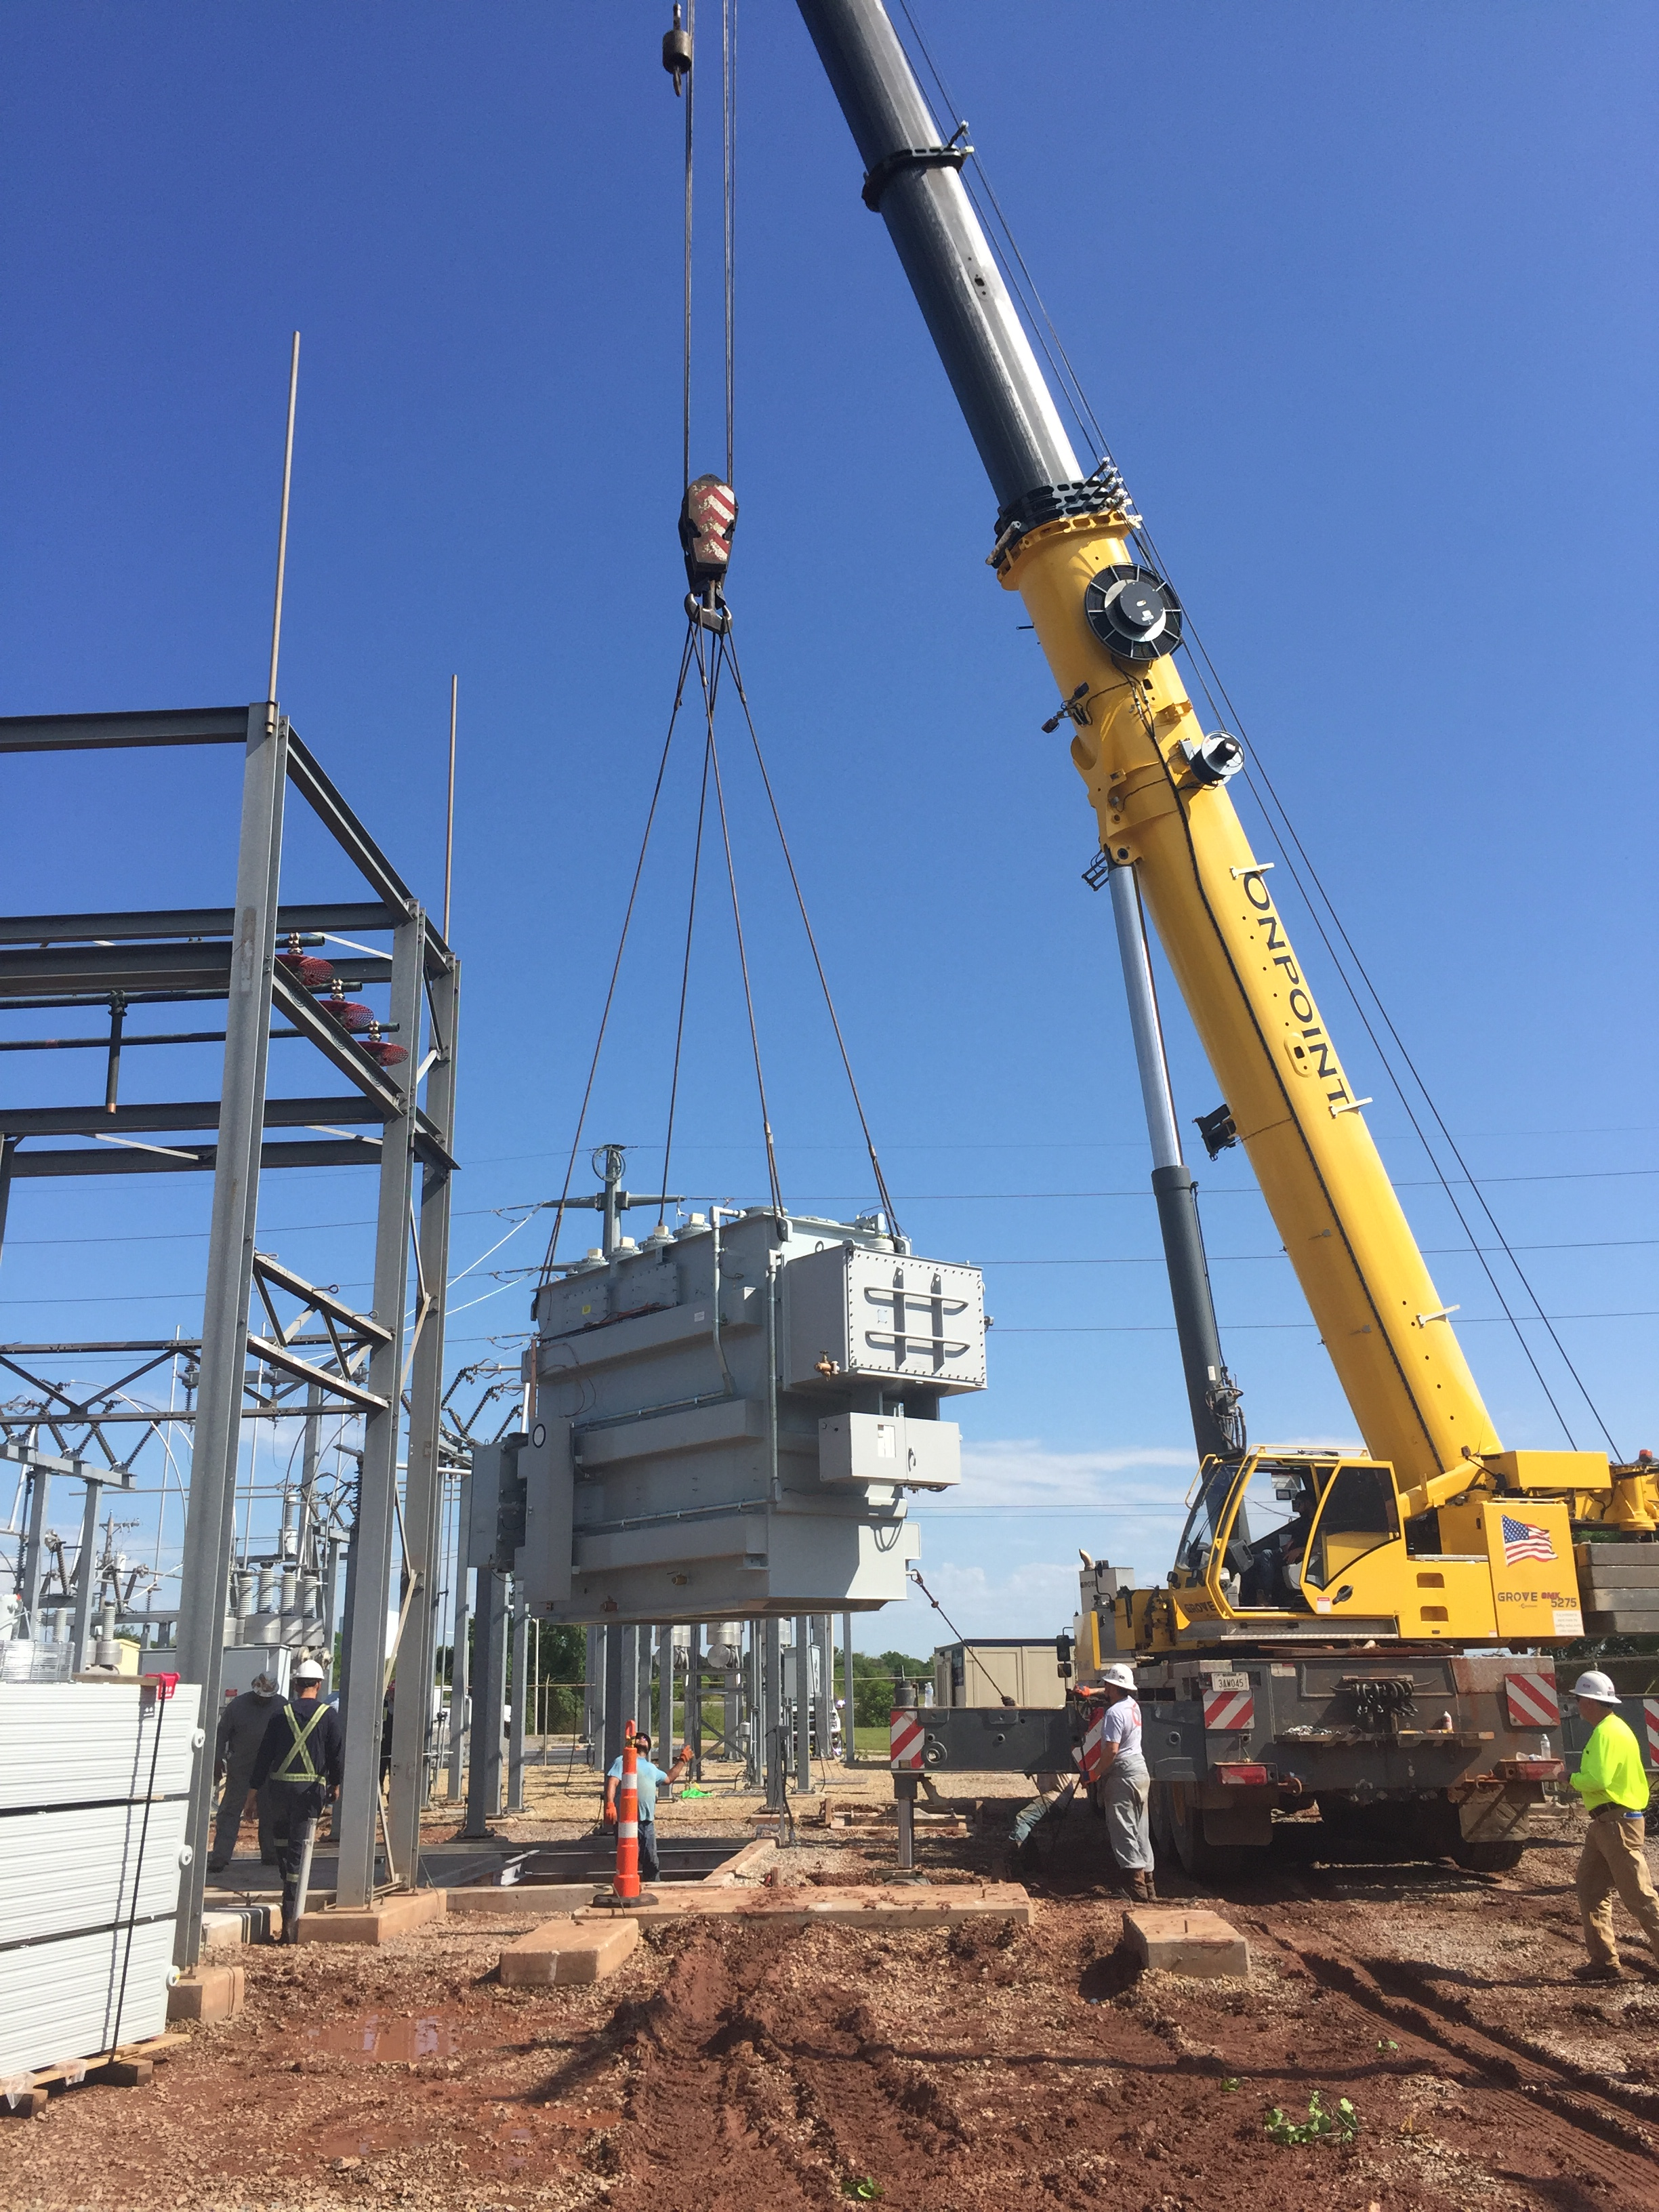 Image of a worksite